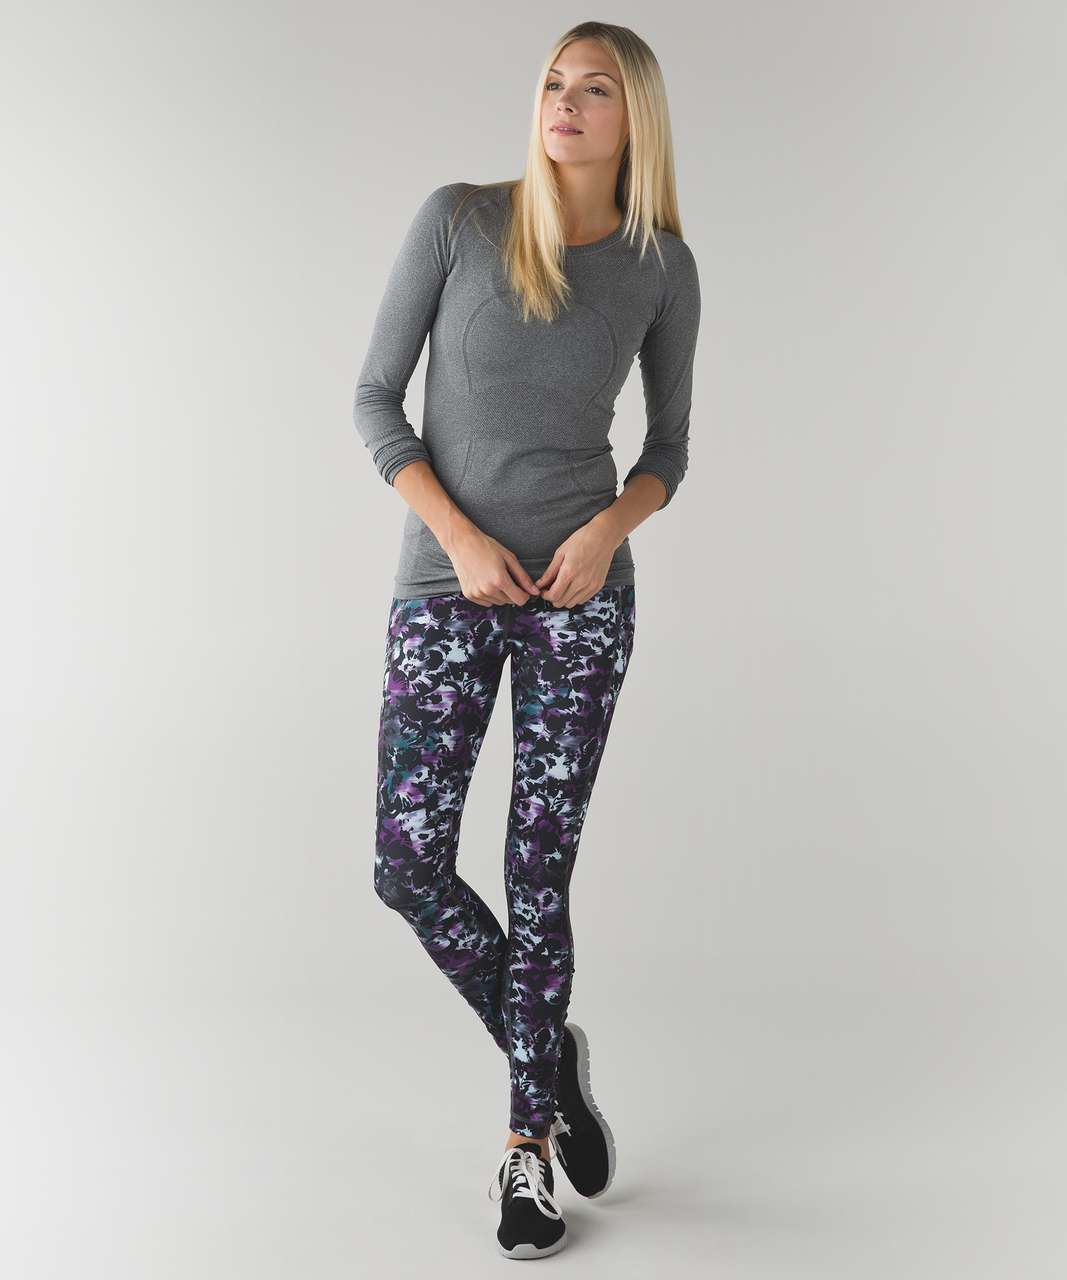 Lululemon Speed Tight IV - Biggie Fleur Sombre Caspian Blue Black